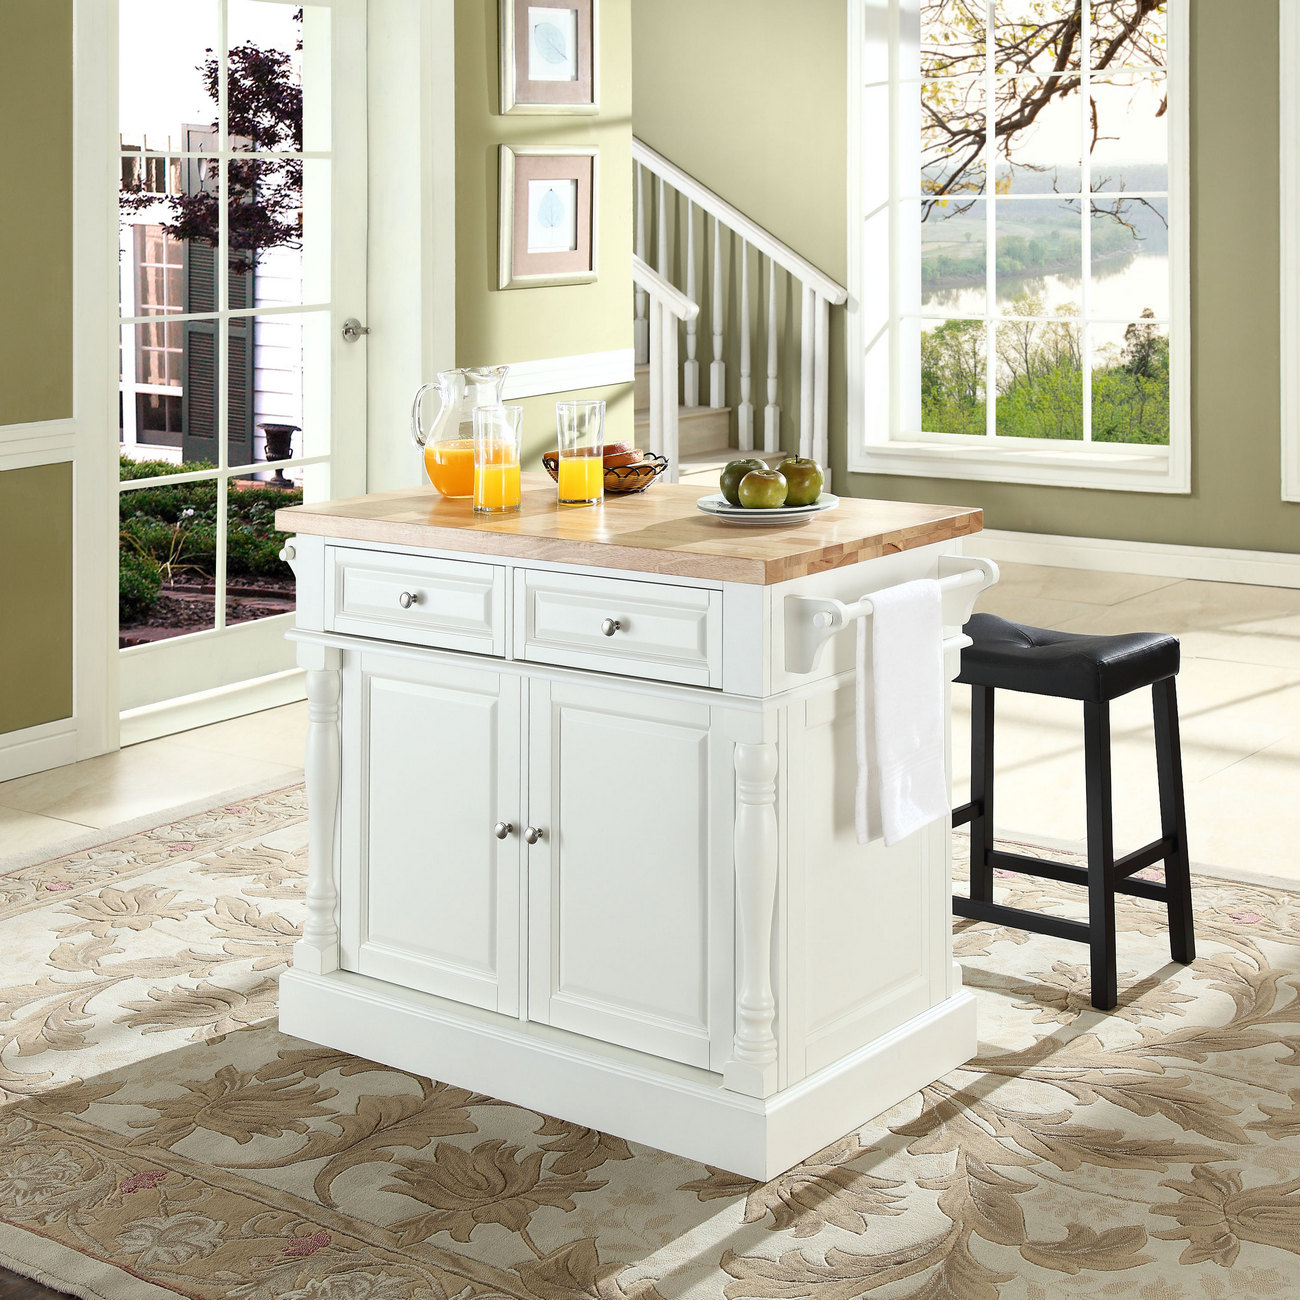 Oxford Butcher Block Top Kitchen Island In White Finish W 24 Black Upholstered Saddle Stools Crosley Kf300064wh